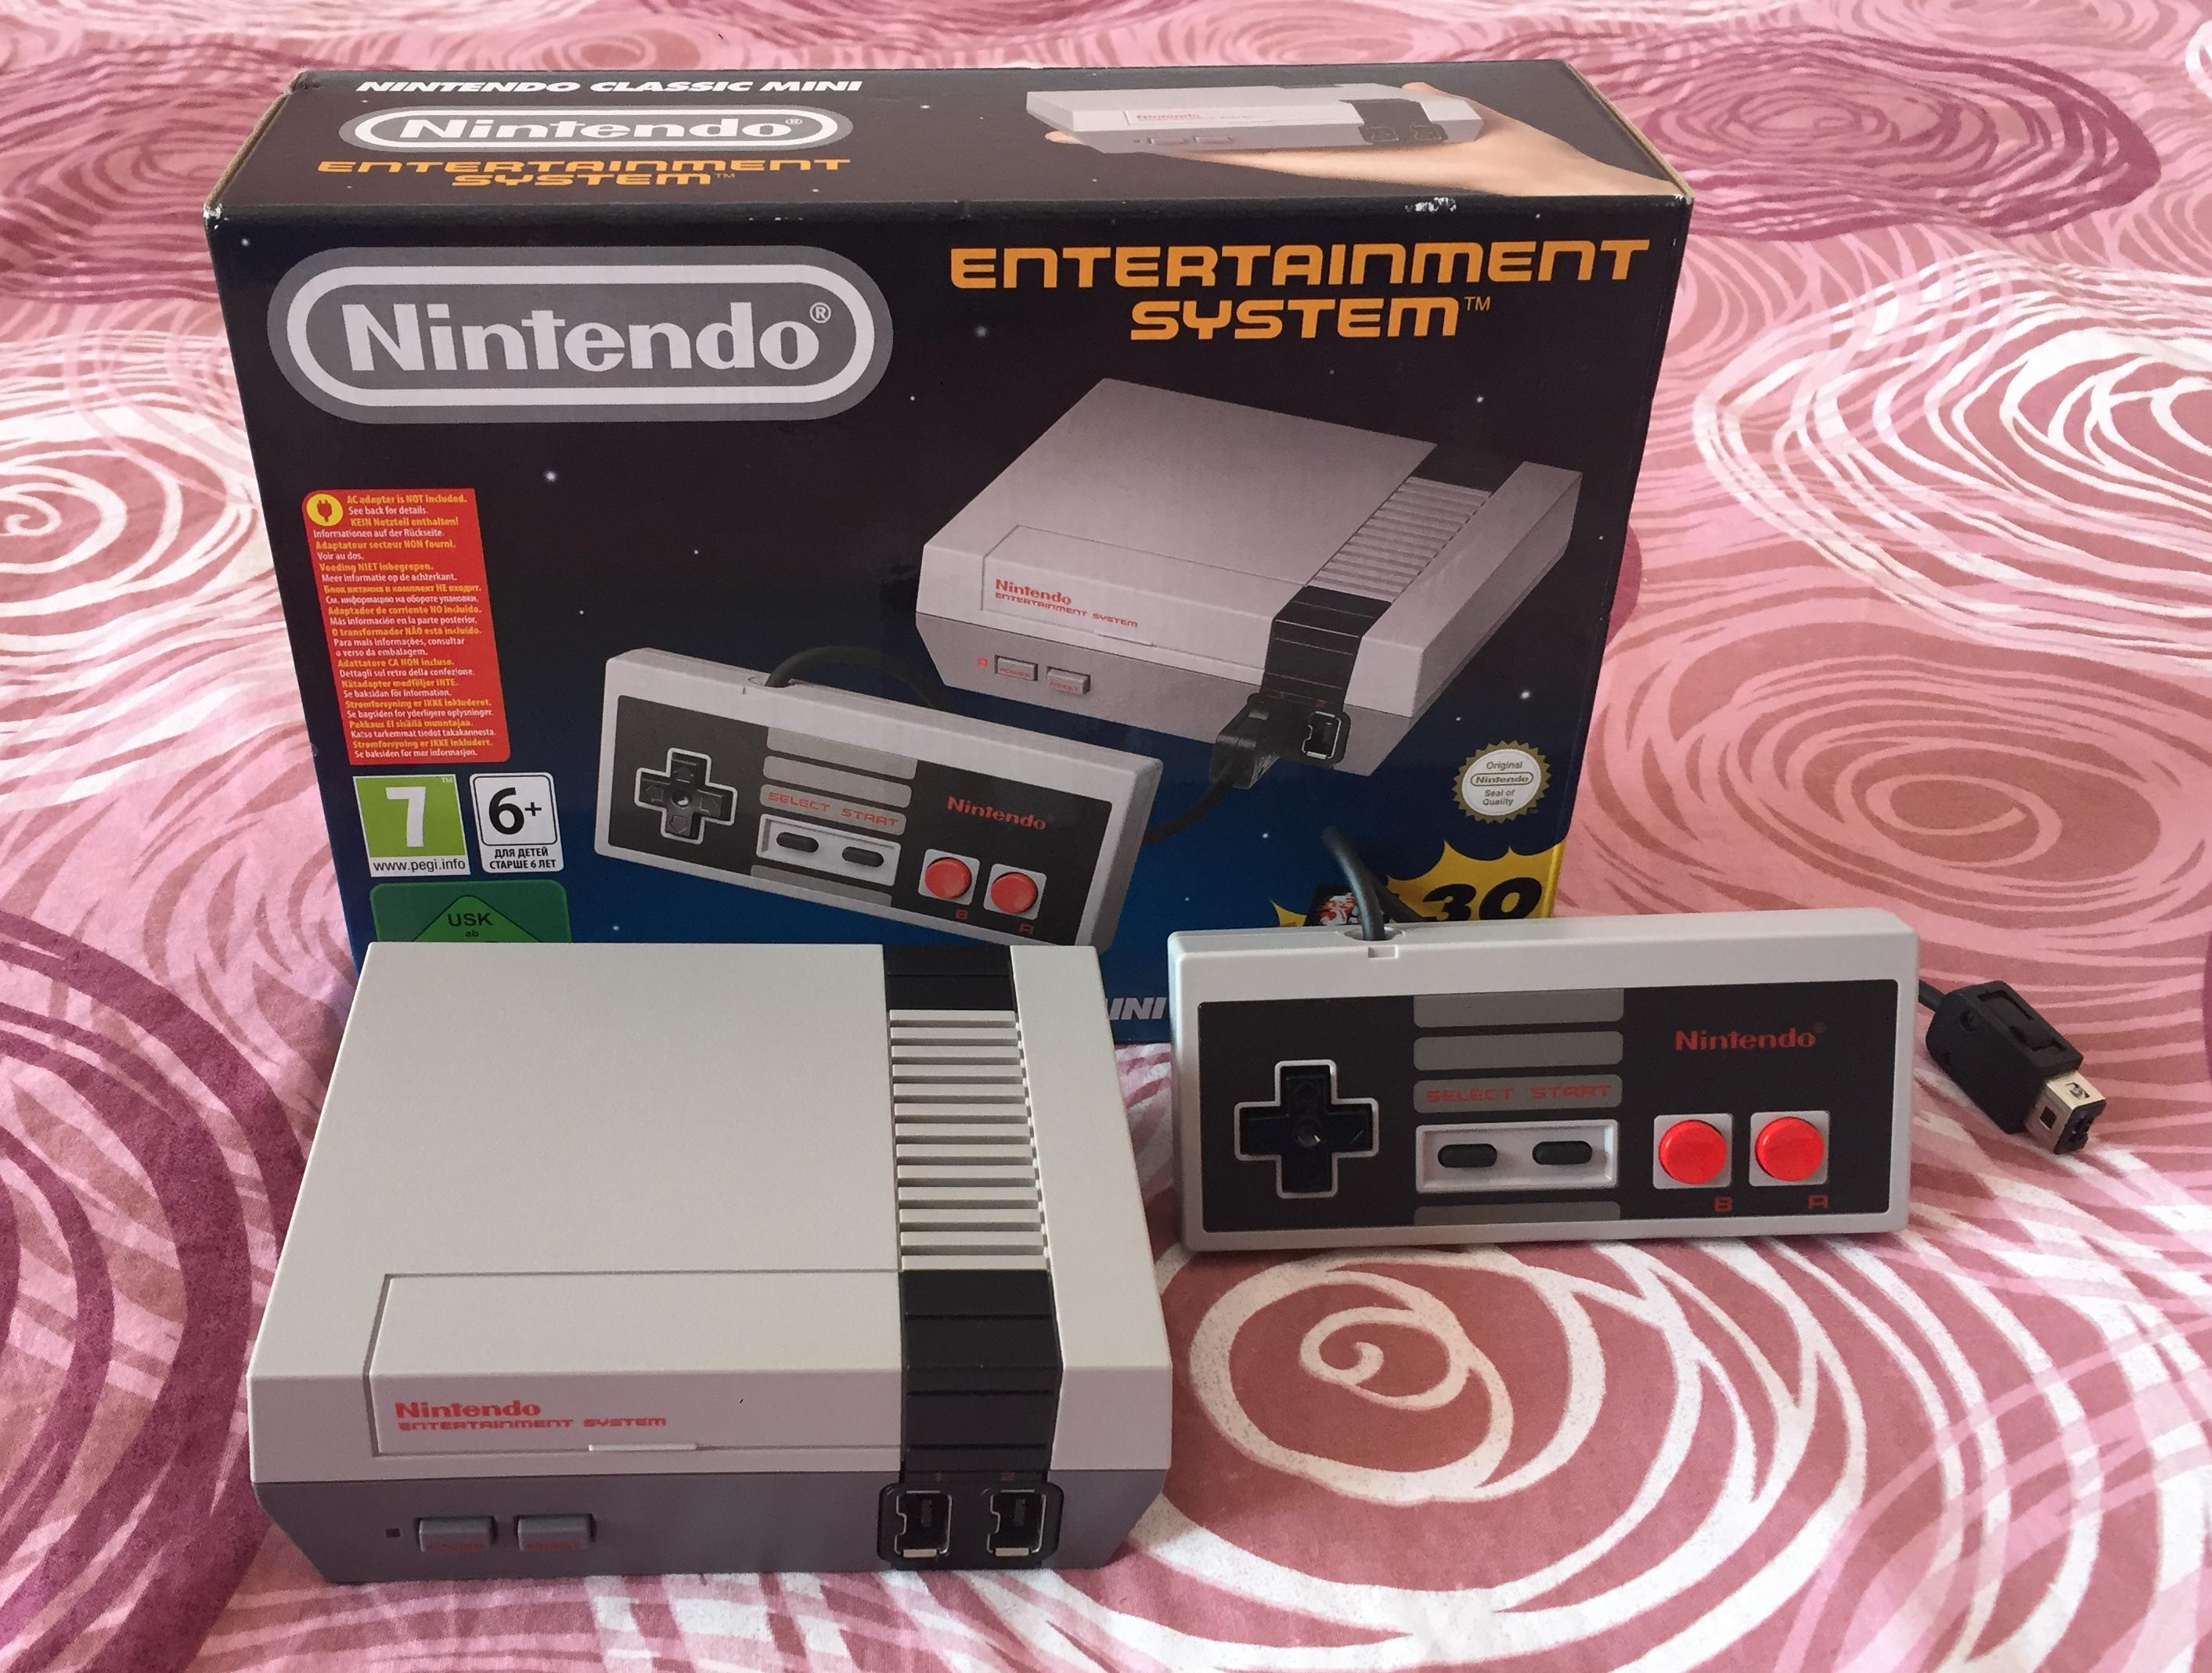 NES Classic Mini - getting ready for some 8-bit retro gaming